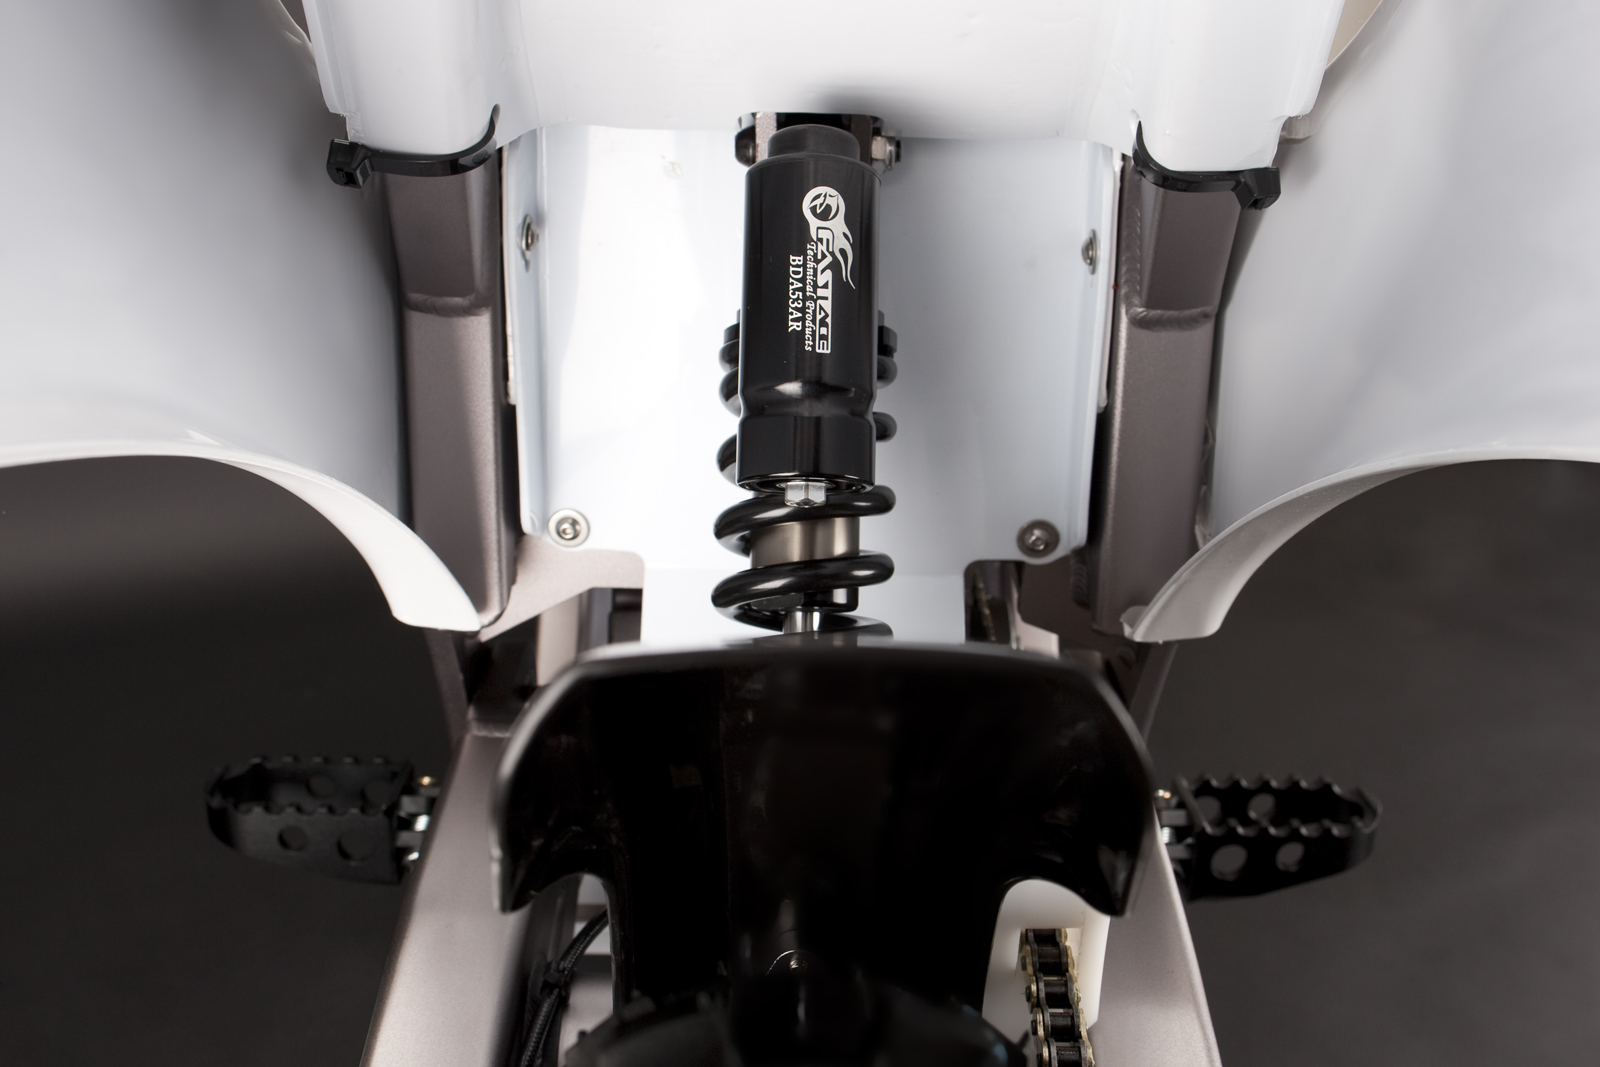 2010 Zero MX Electric Motorcycle: Rear Shock